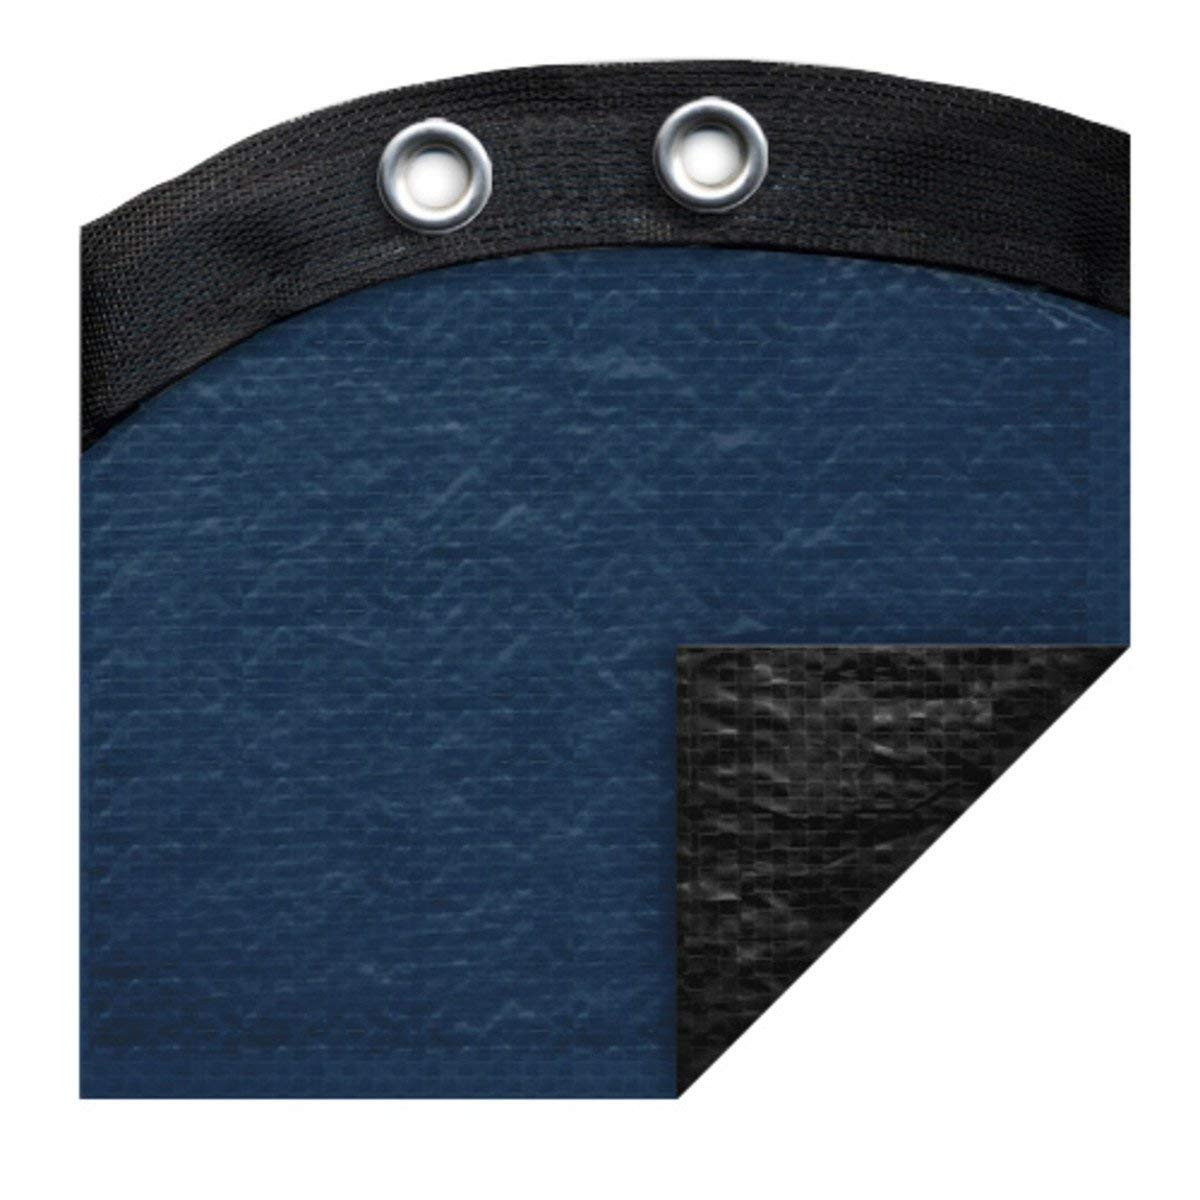 Pool Mate Pro-Select 28' Round Winter Pool Cover - Dazzling Blue